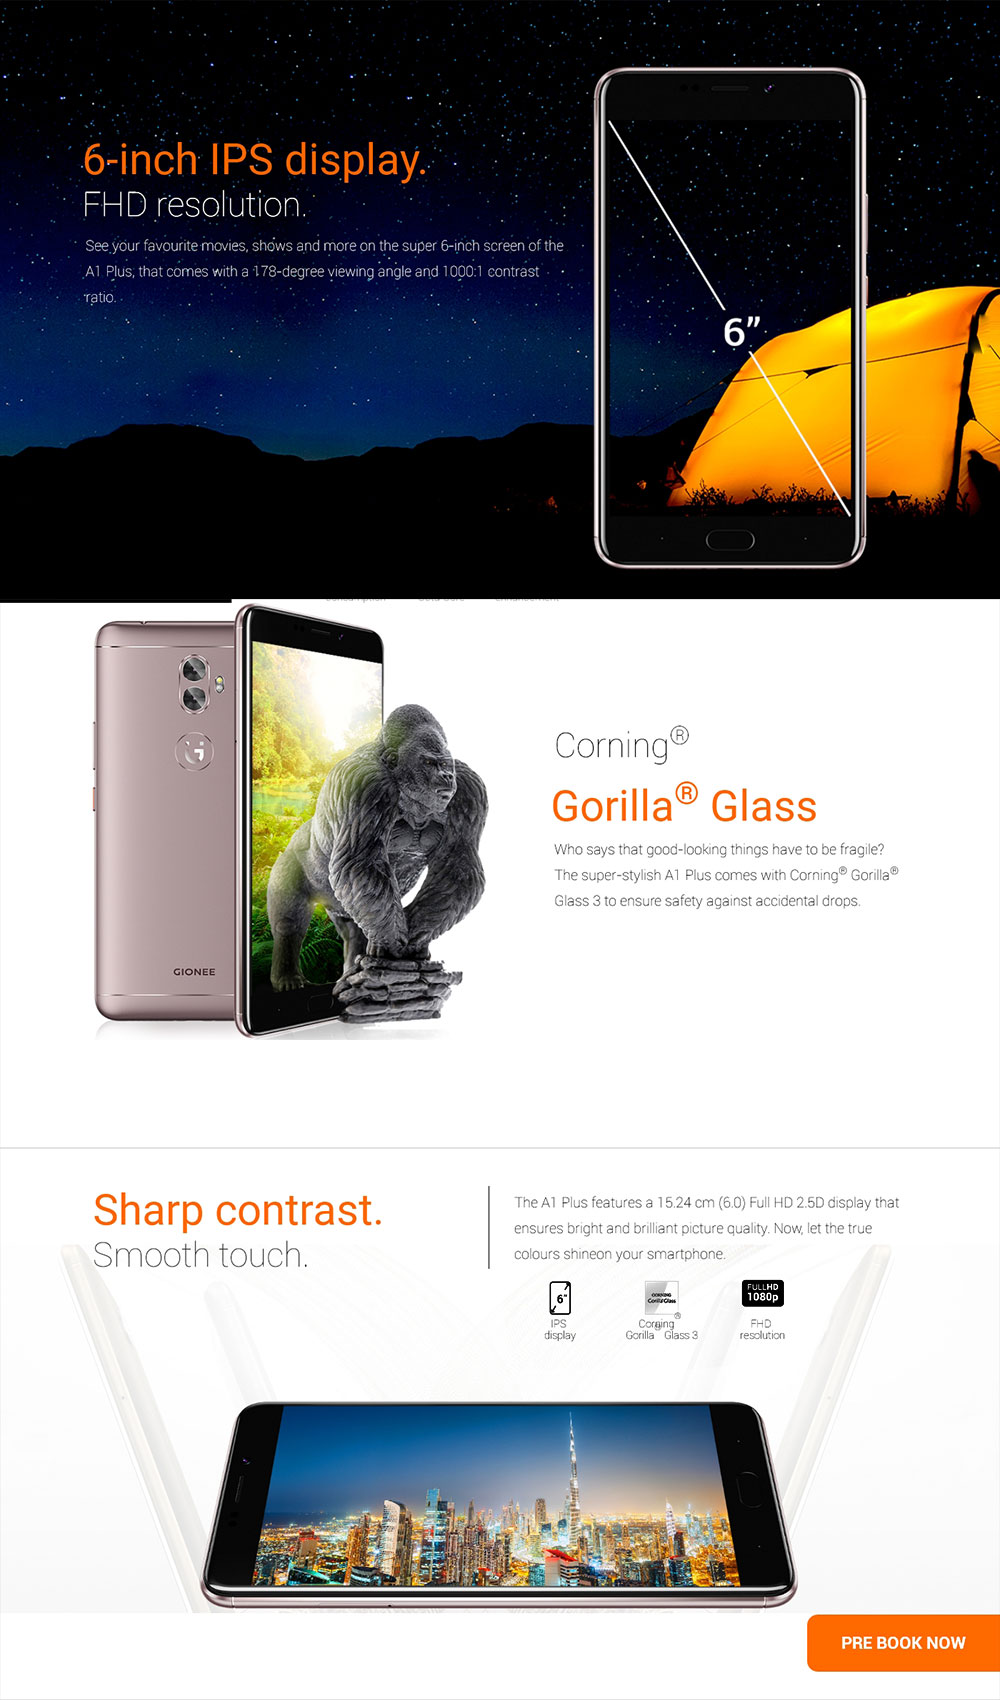 Gionee-A1-Plus-_-_07